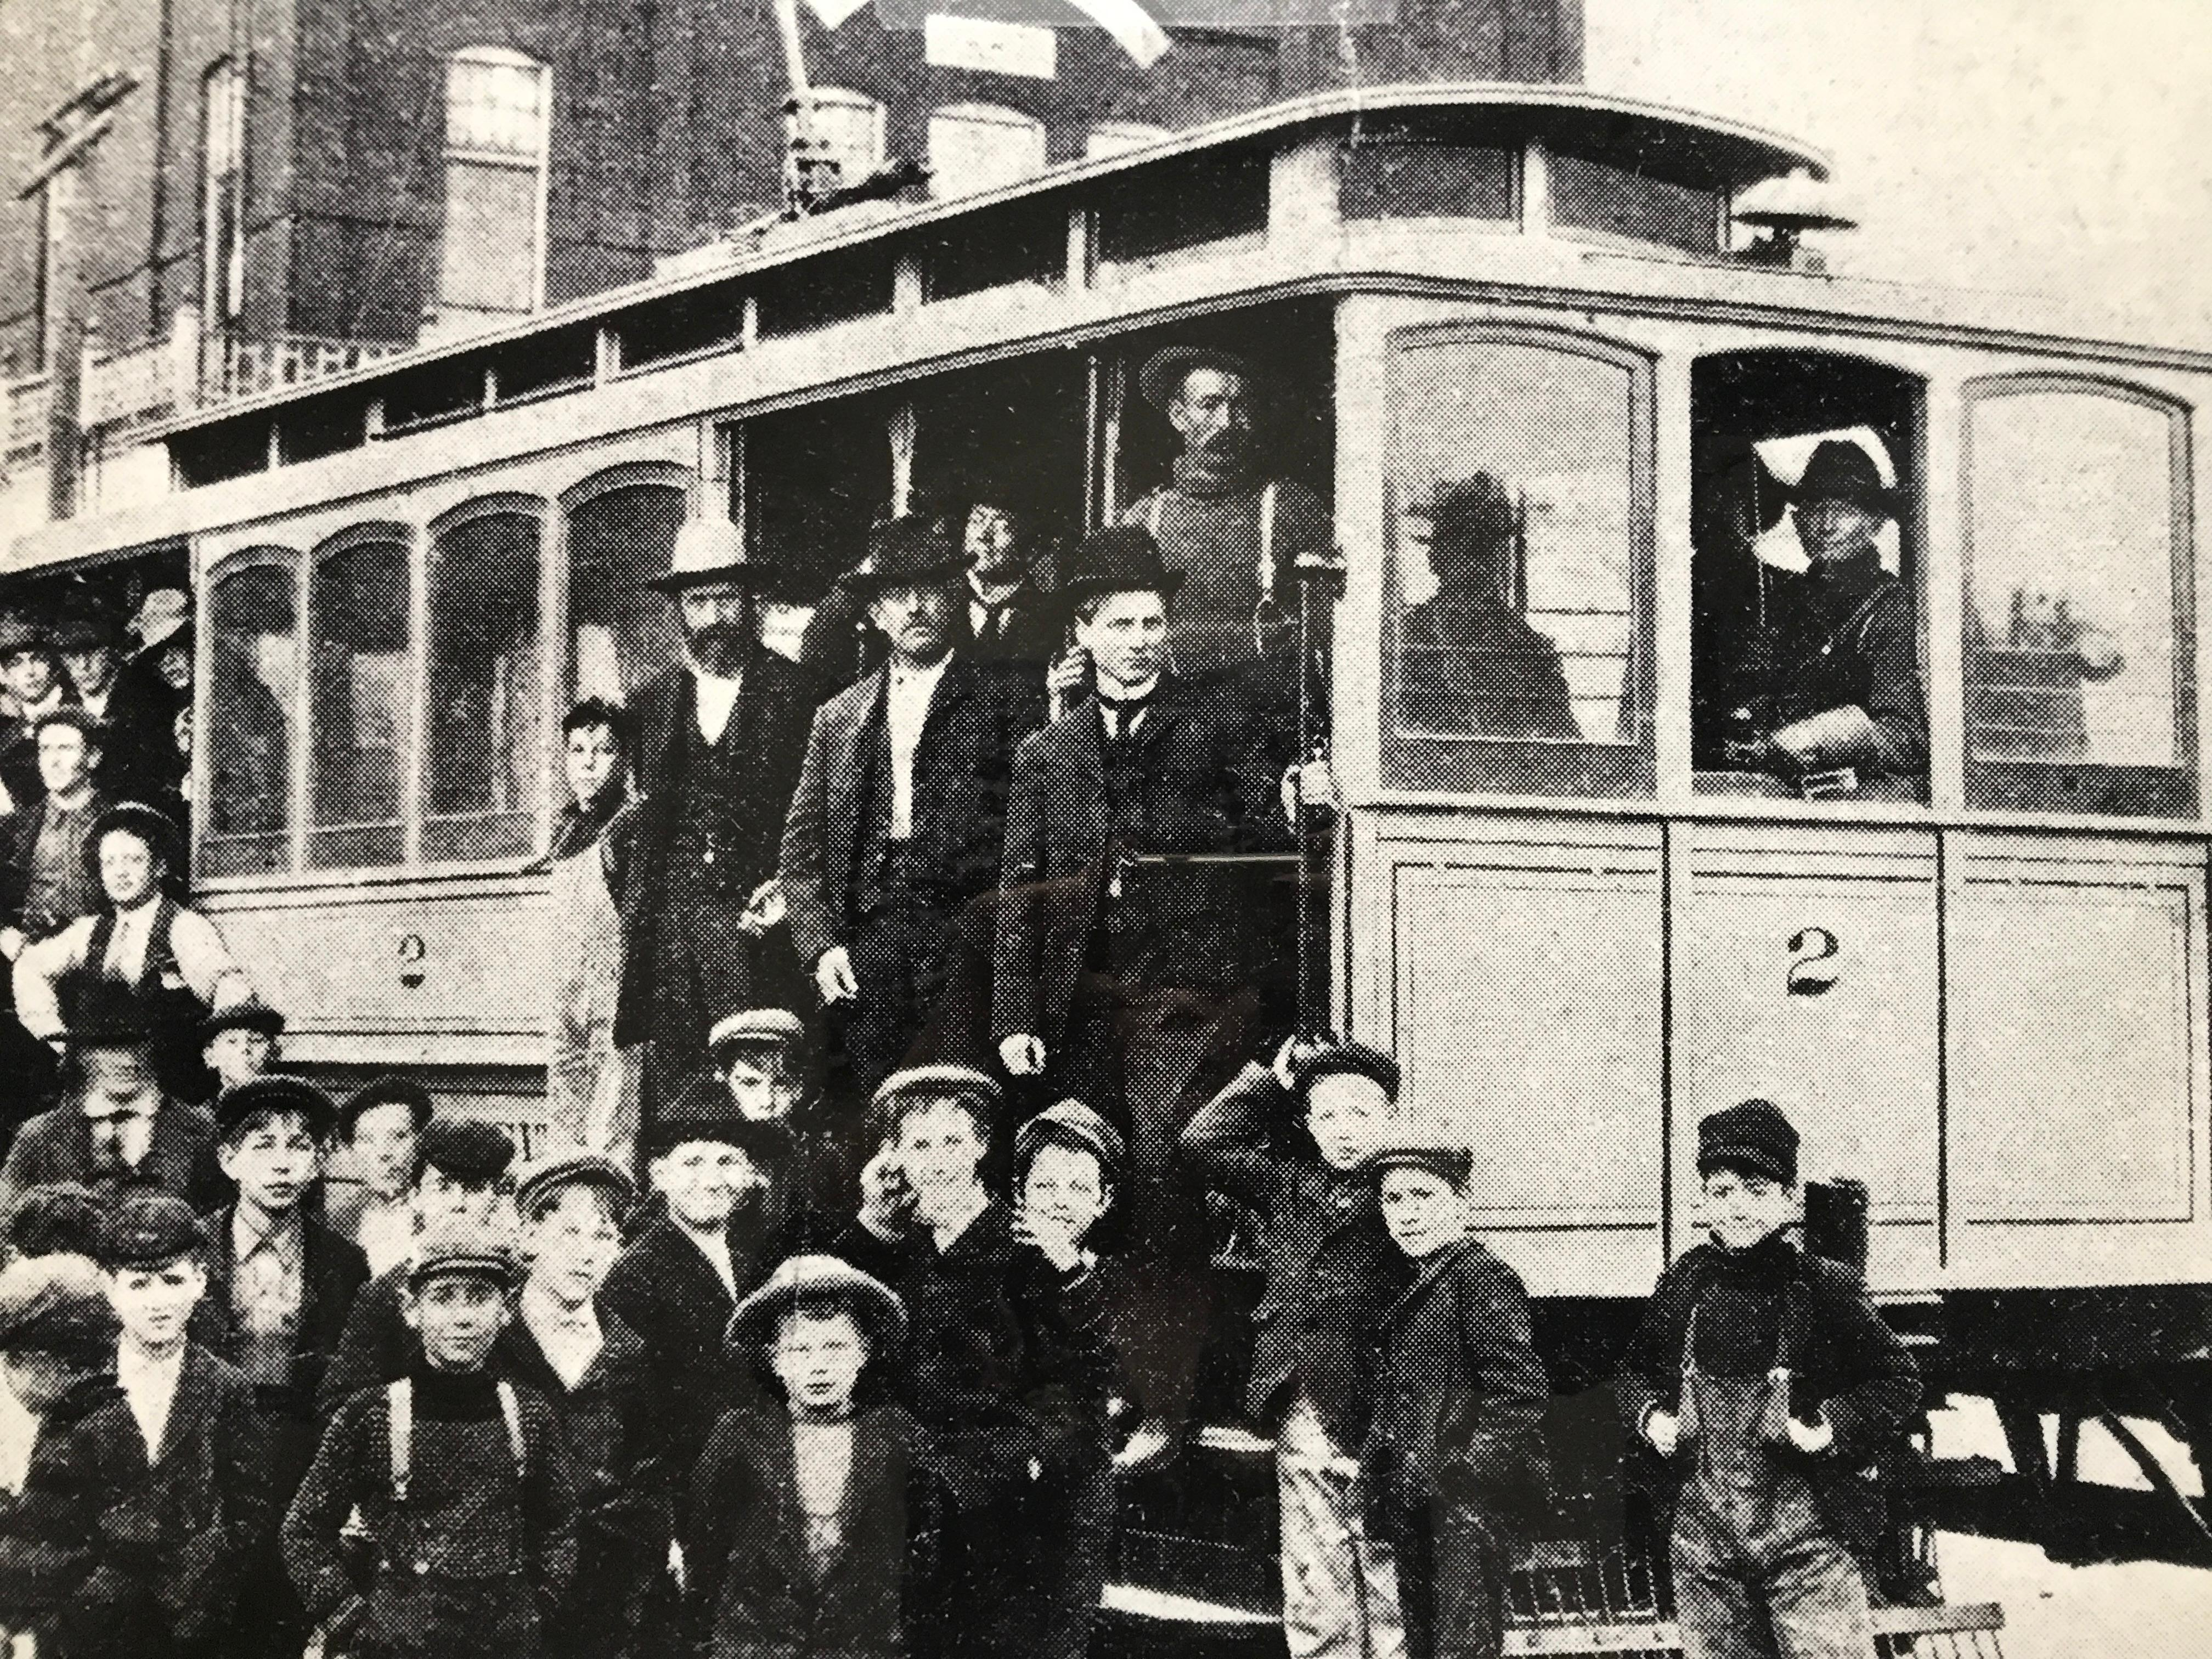 In the early 1900s, the establishment of an electric streetcar system was a clear sign of a city's growth as well as a faith in its potential for future expansion. There was therefore cause for great celebration on Thanksgiving Day, 1904, with the opening of Nevada's first streetcar line, a three-mile route between Reno and the newly founded town of Sparks. (Photo courtesy: Nevada Historical Society)